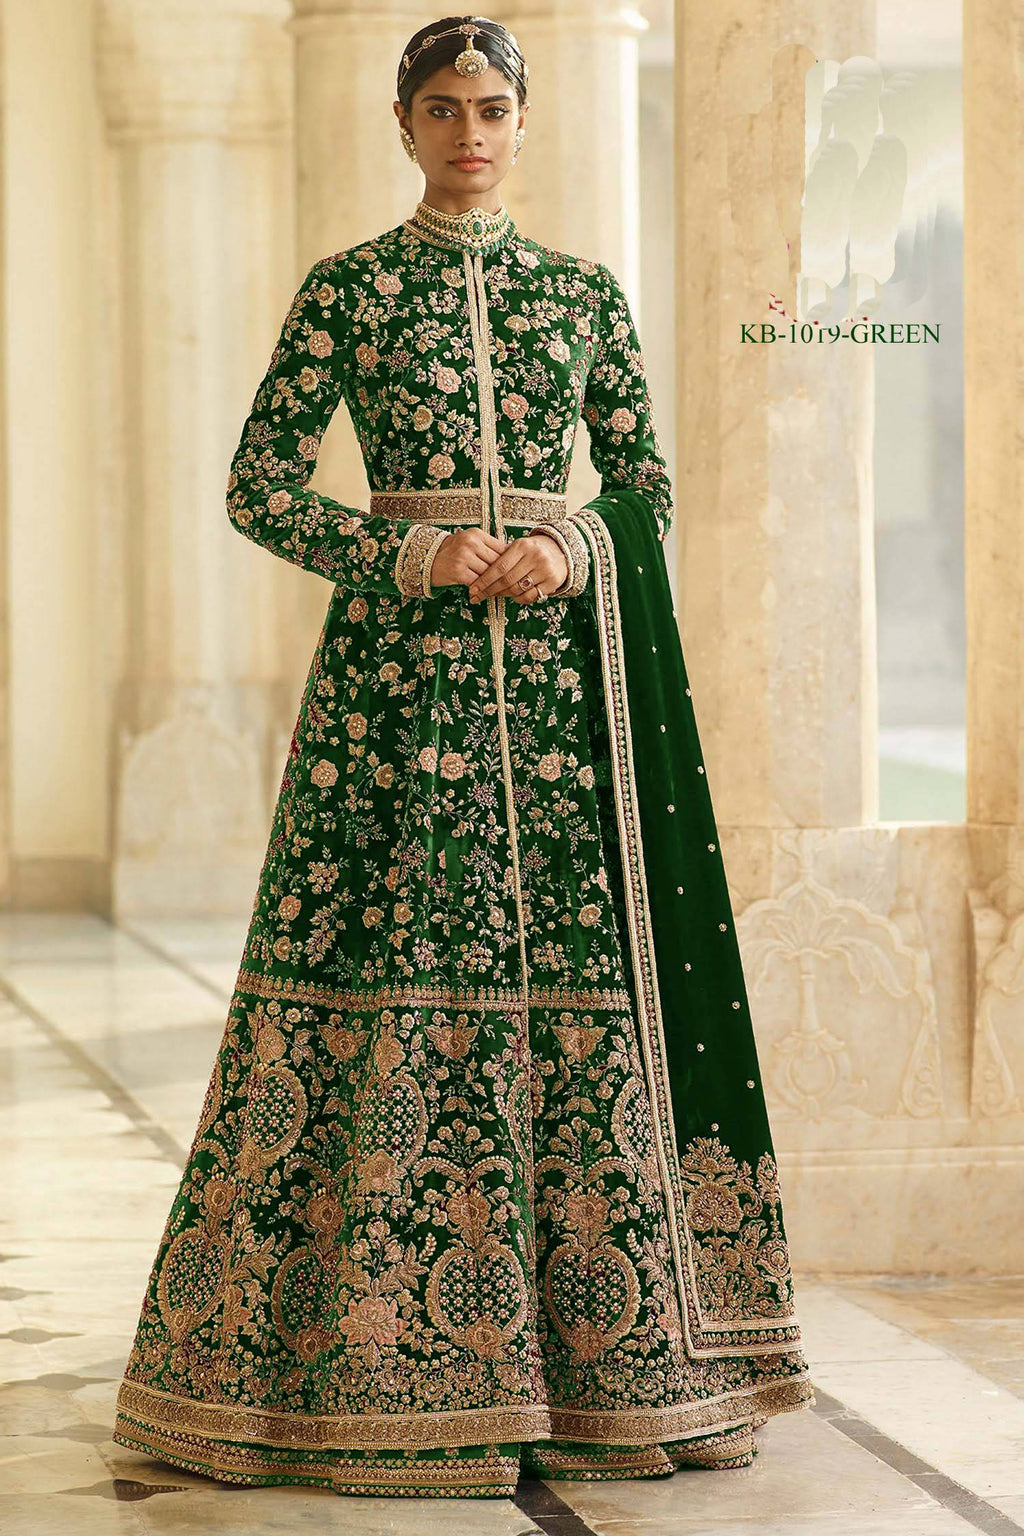 Green Velvet Embroidered Designer Wedding Salwar Kameez